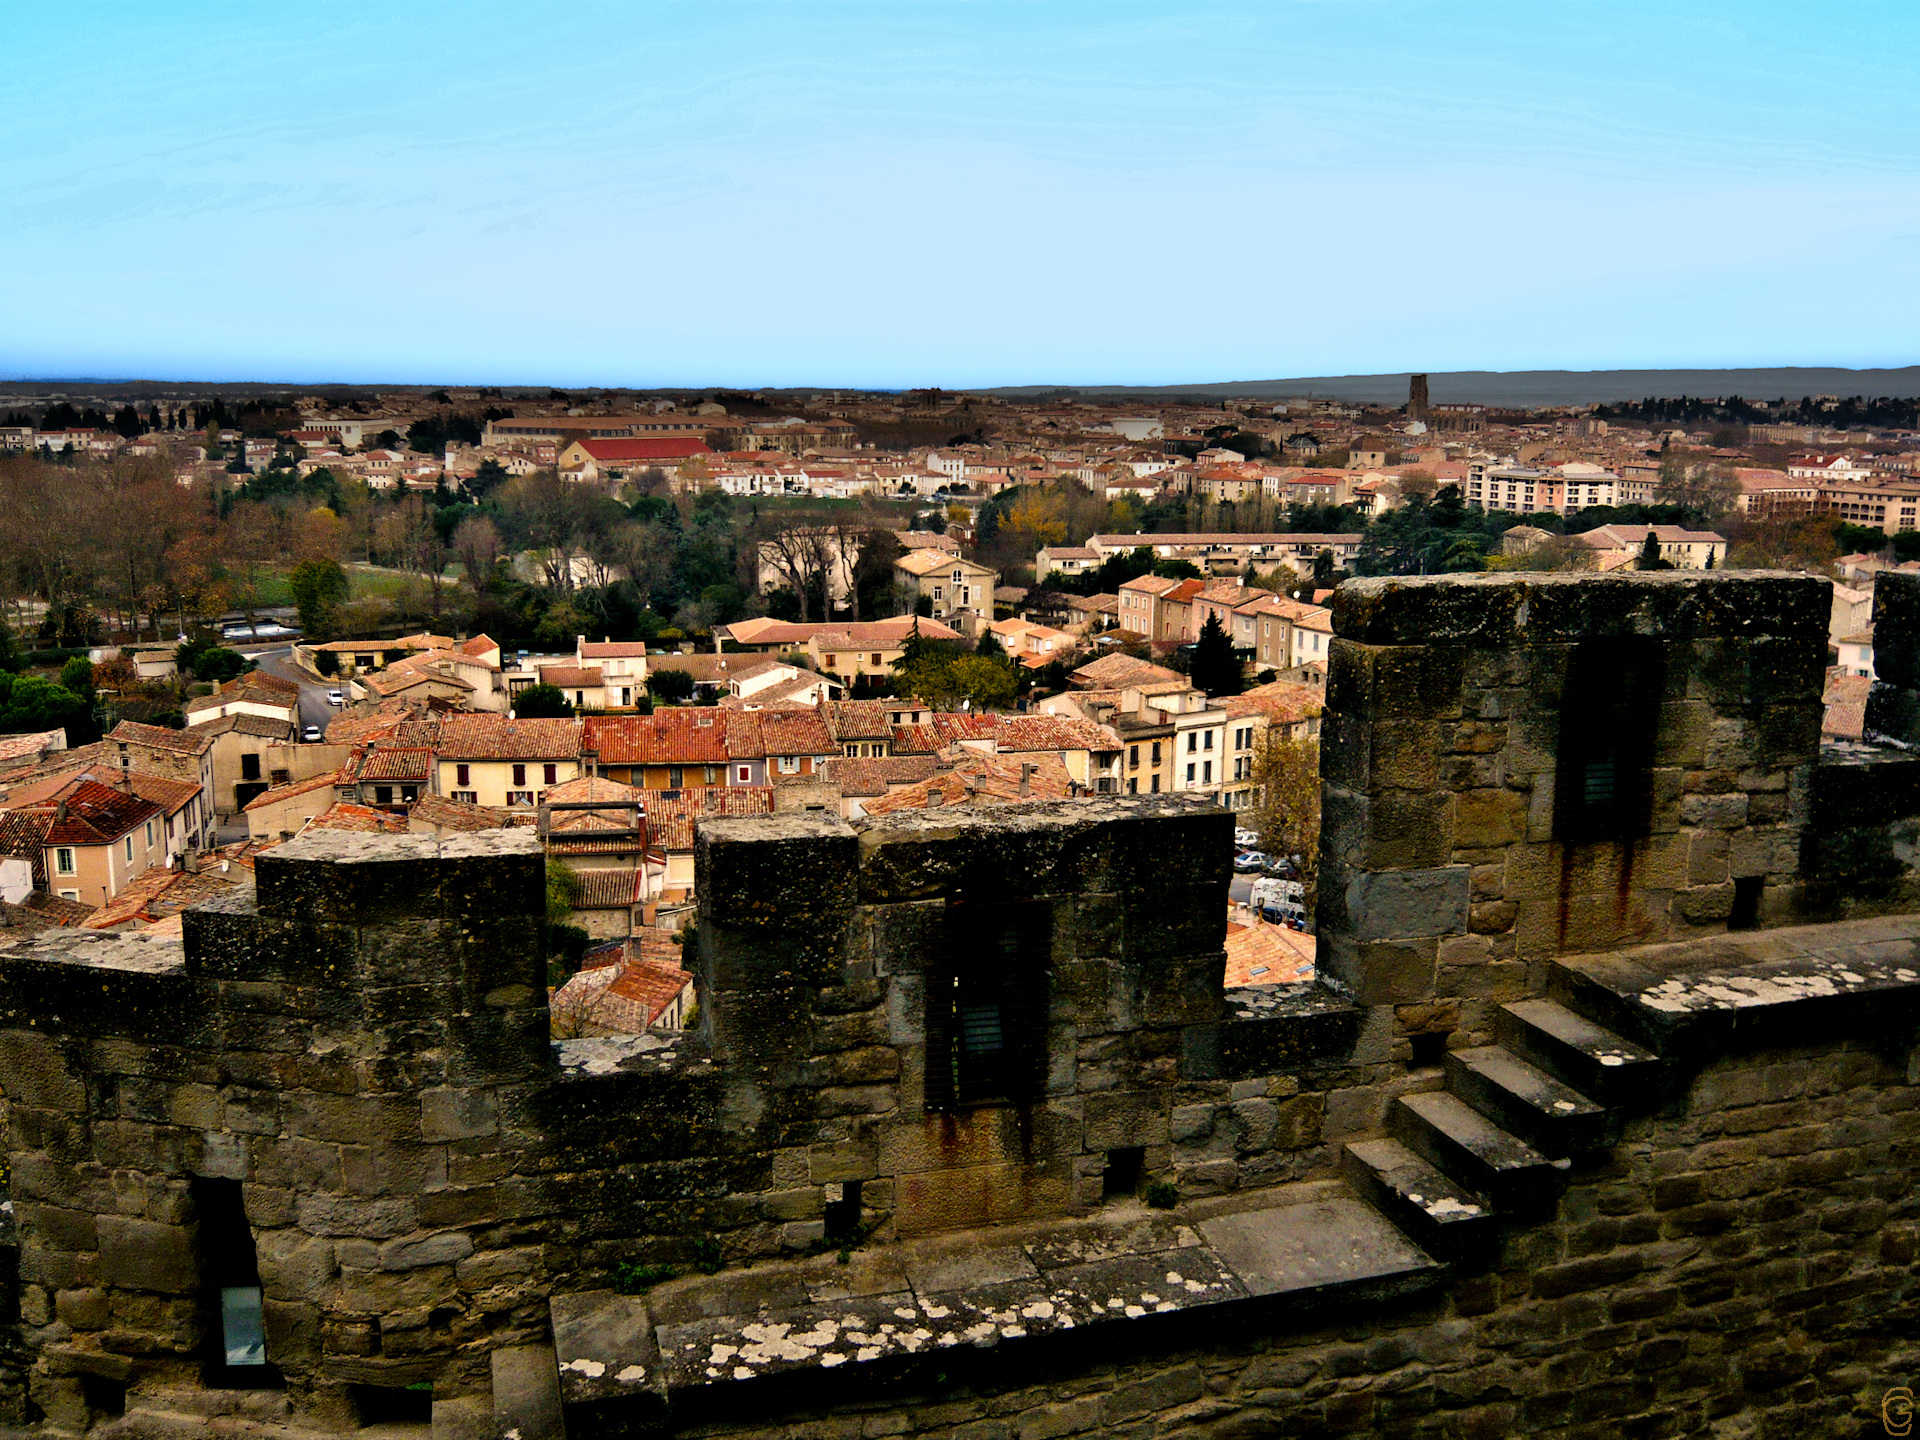 From Carcassonne - Week of May 21st to May 25th